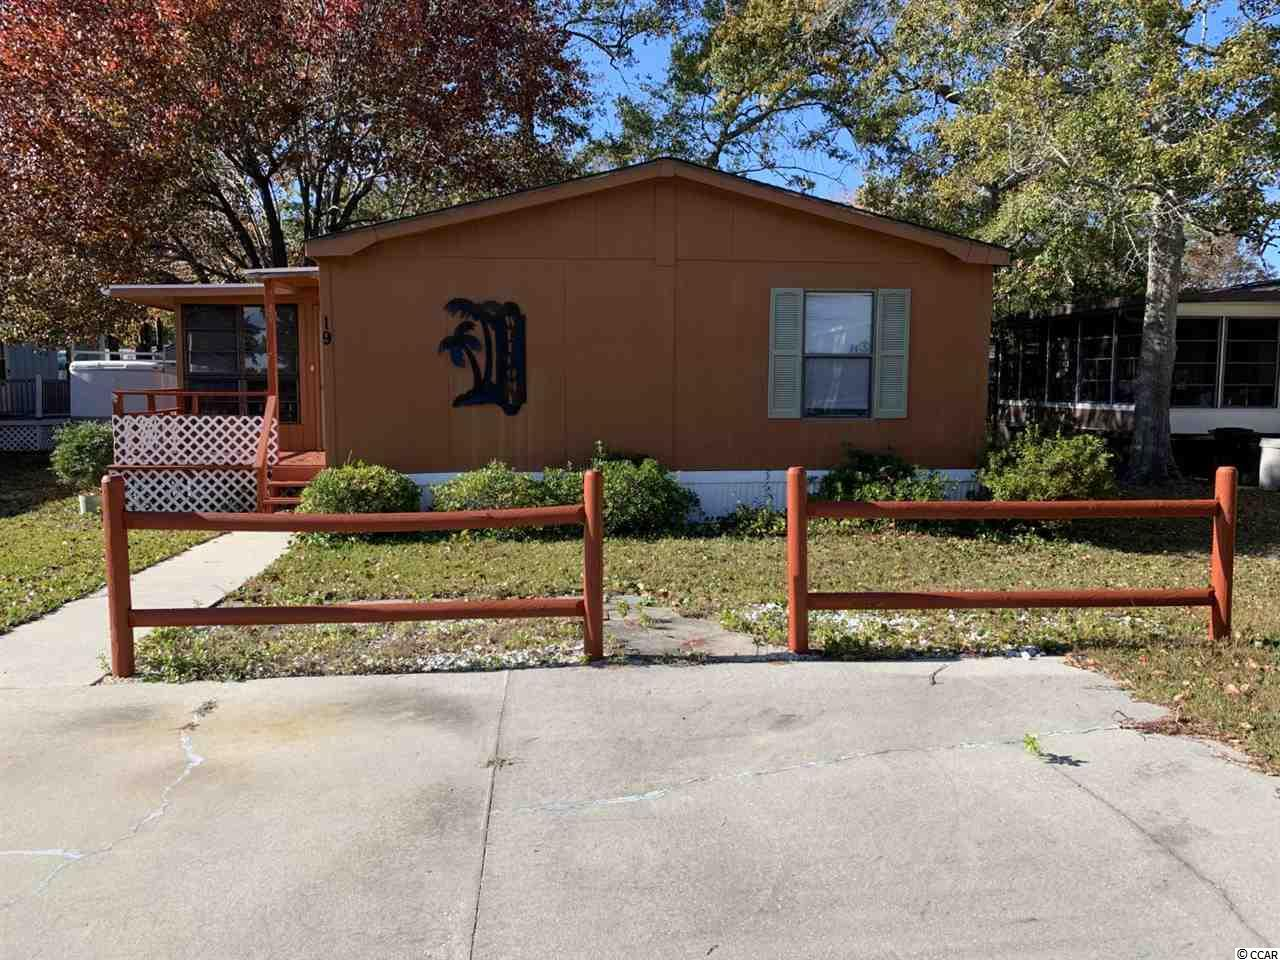 Welcome to this beautiful 3 br 2 ba, split bedroom floor plan, double wide manufactured home that's been kept in great condition. This home features major upgrades such as a brand new roof installed October 2019 as well as an upgraded kitchen that boasts updated cabinets, counter tops, sink & faucets, new laminate flooring all throughout the home, an updated guest bathroom that showcases new vanities, lighting, sink, and toilet and ceramic shower. Captains Cove is a 55 and older community that allows has an pool thats serviced by the HOA and also a clubhouse that's perfect for holding community events or gatherings. This community allows owner golf carts and motorcycles! This home is conveniently located close to the best dining, shopping and entertainment Murrells Inlet has to offer. A fantastic opportunity for a vacation or retirement home near the beach!